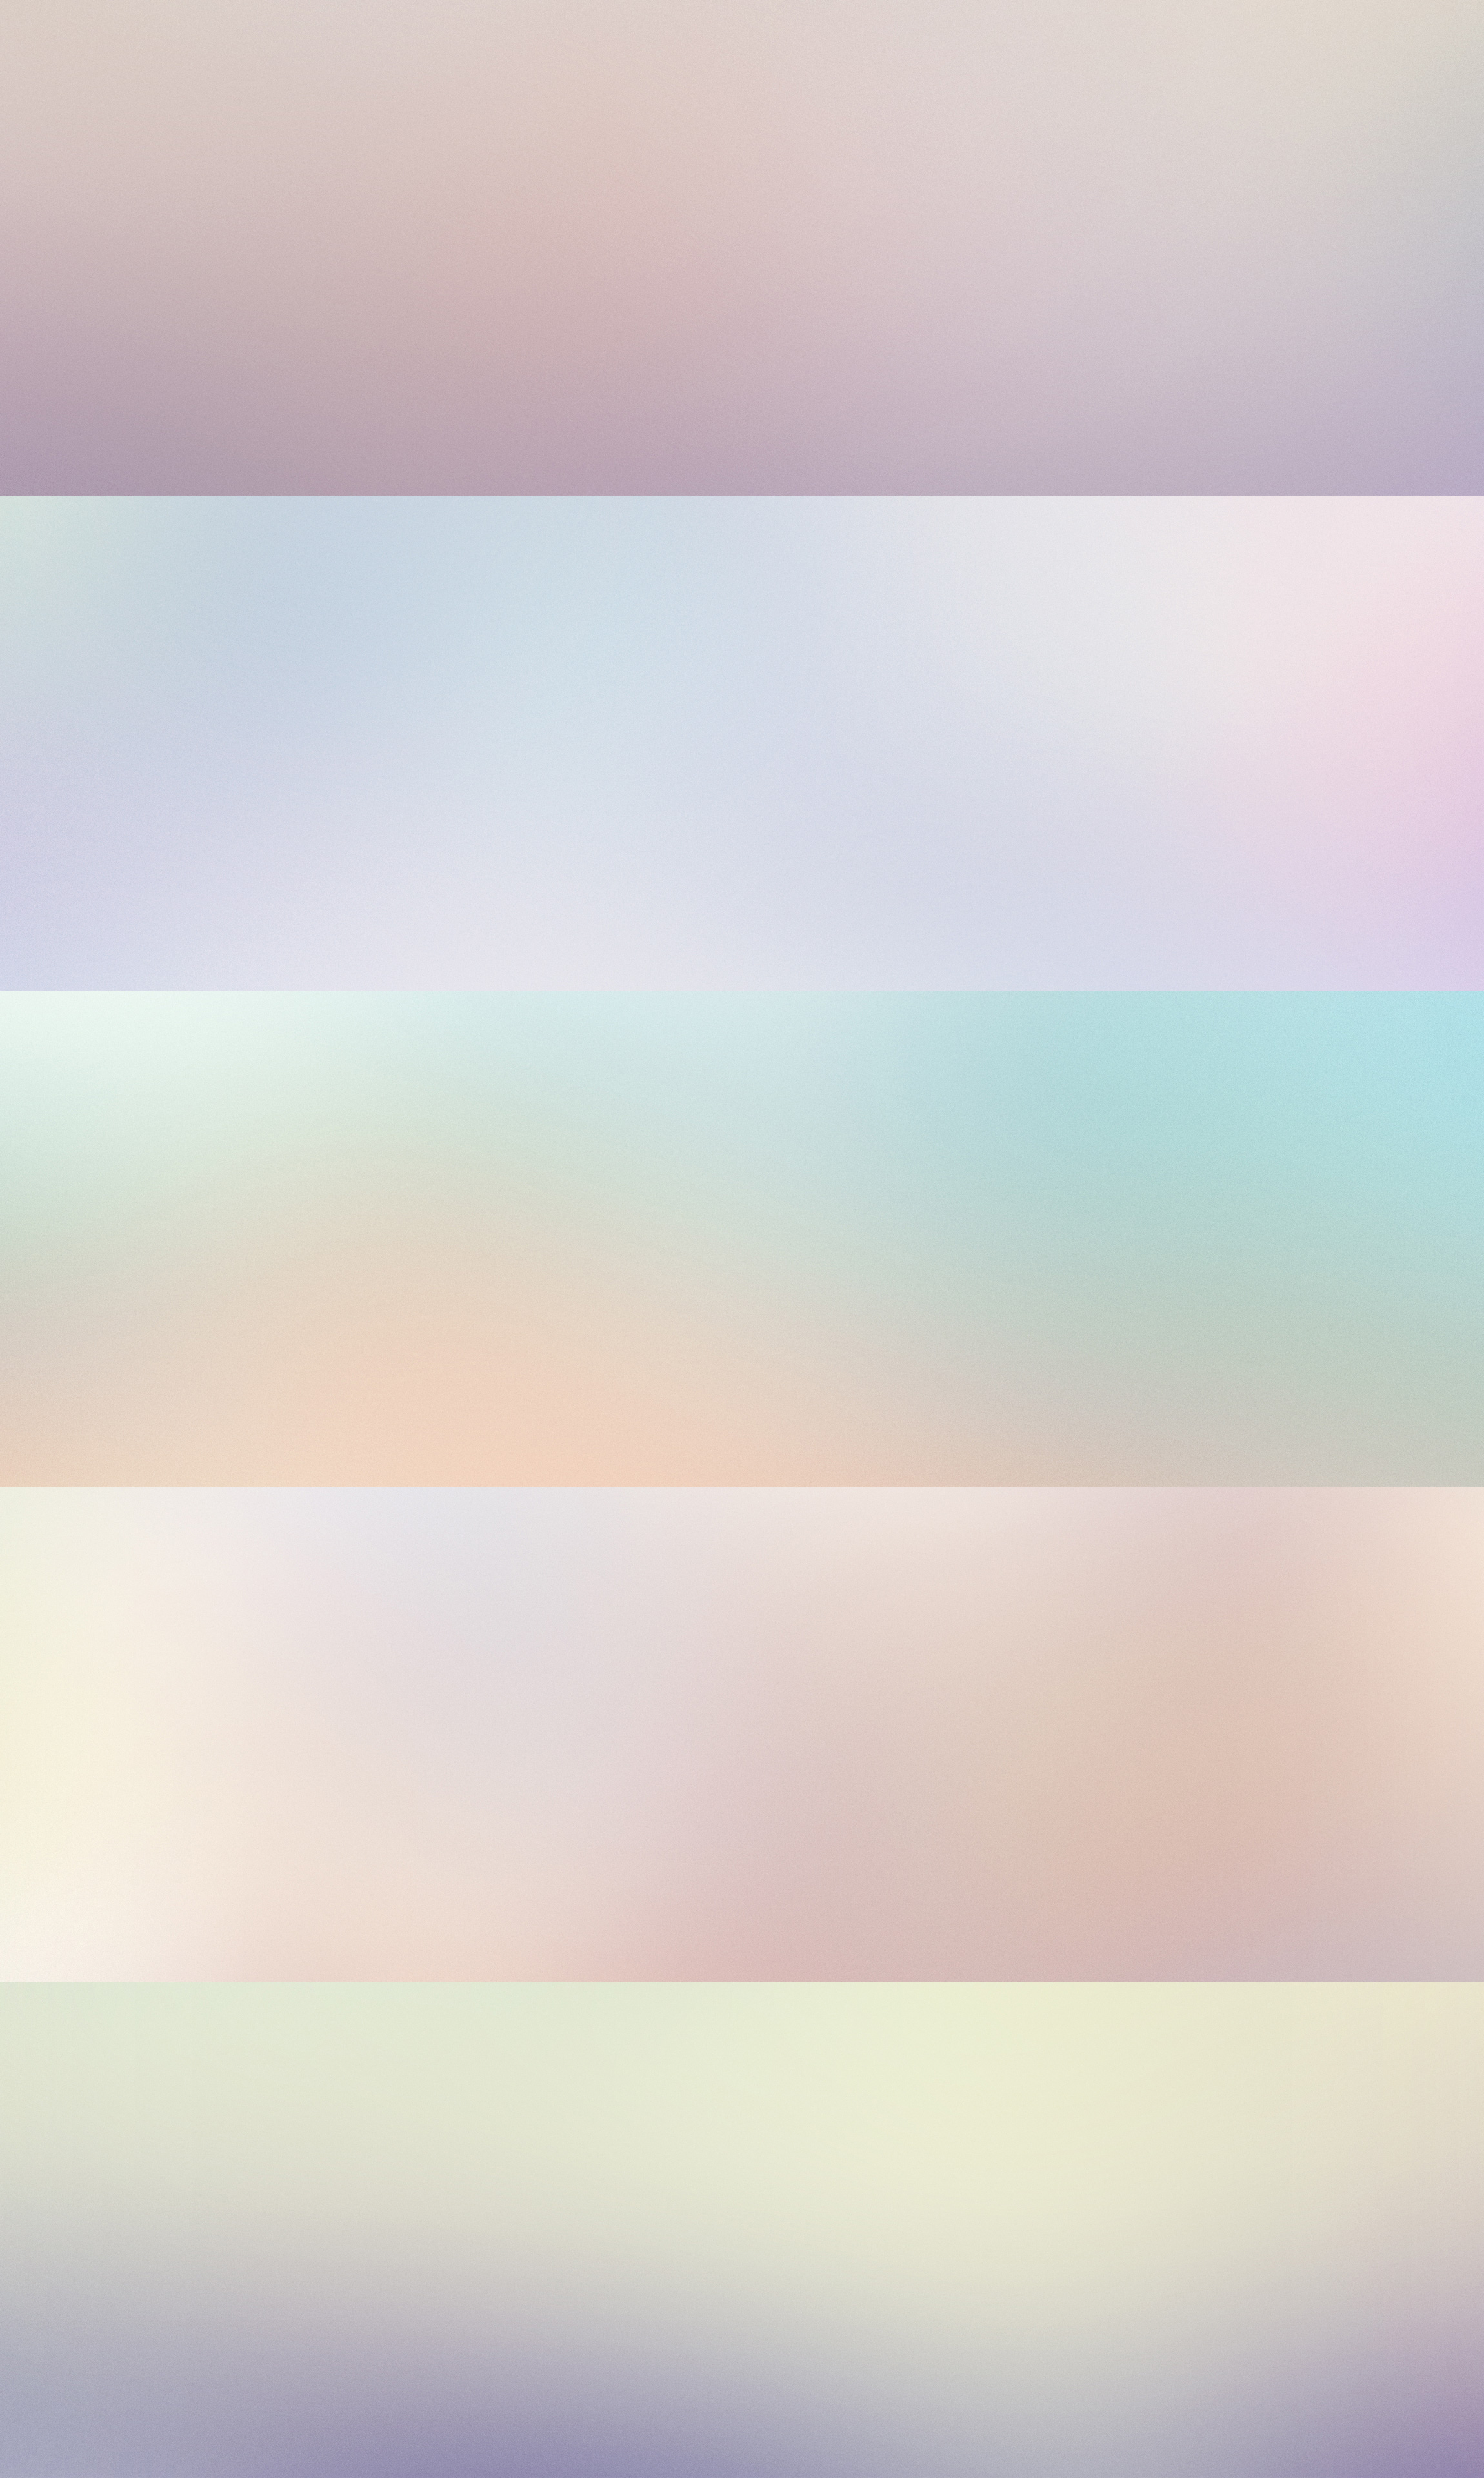 5 Blurred Backgrounds Vol 2 Graphicburger